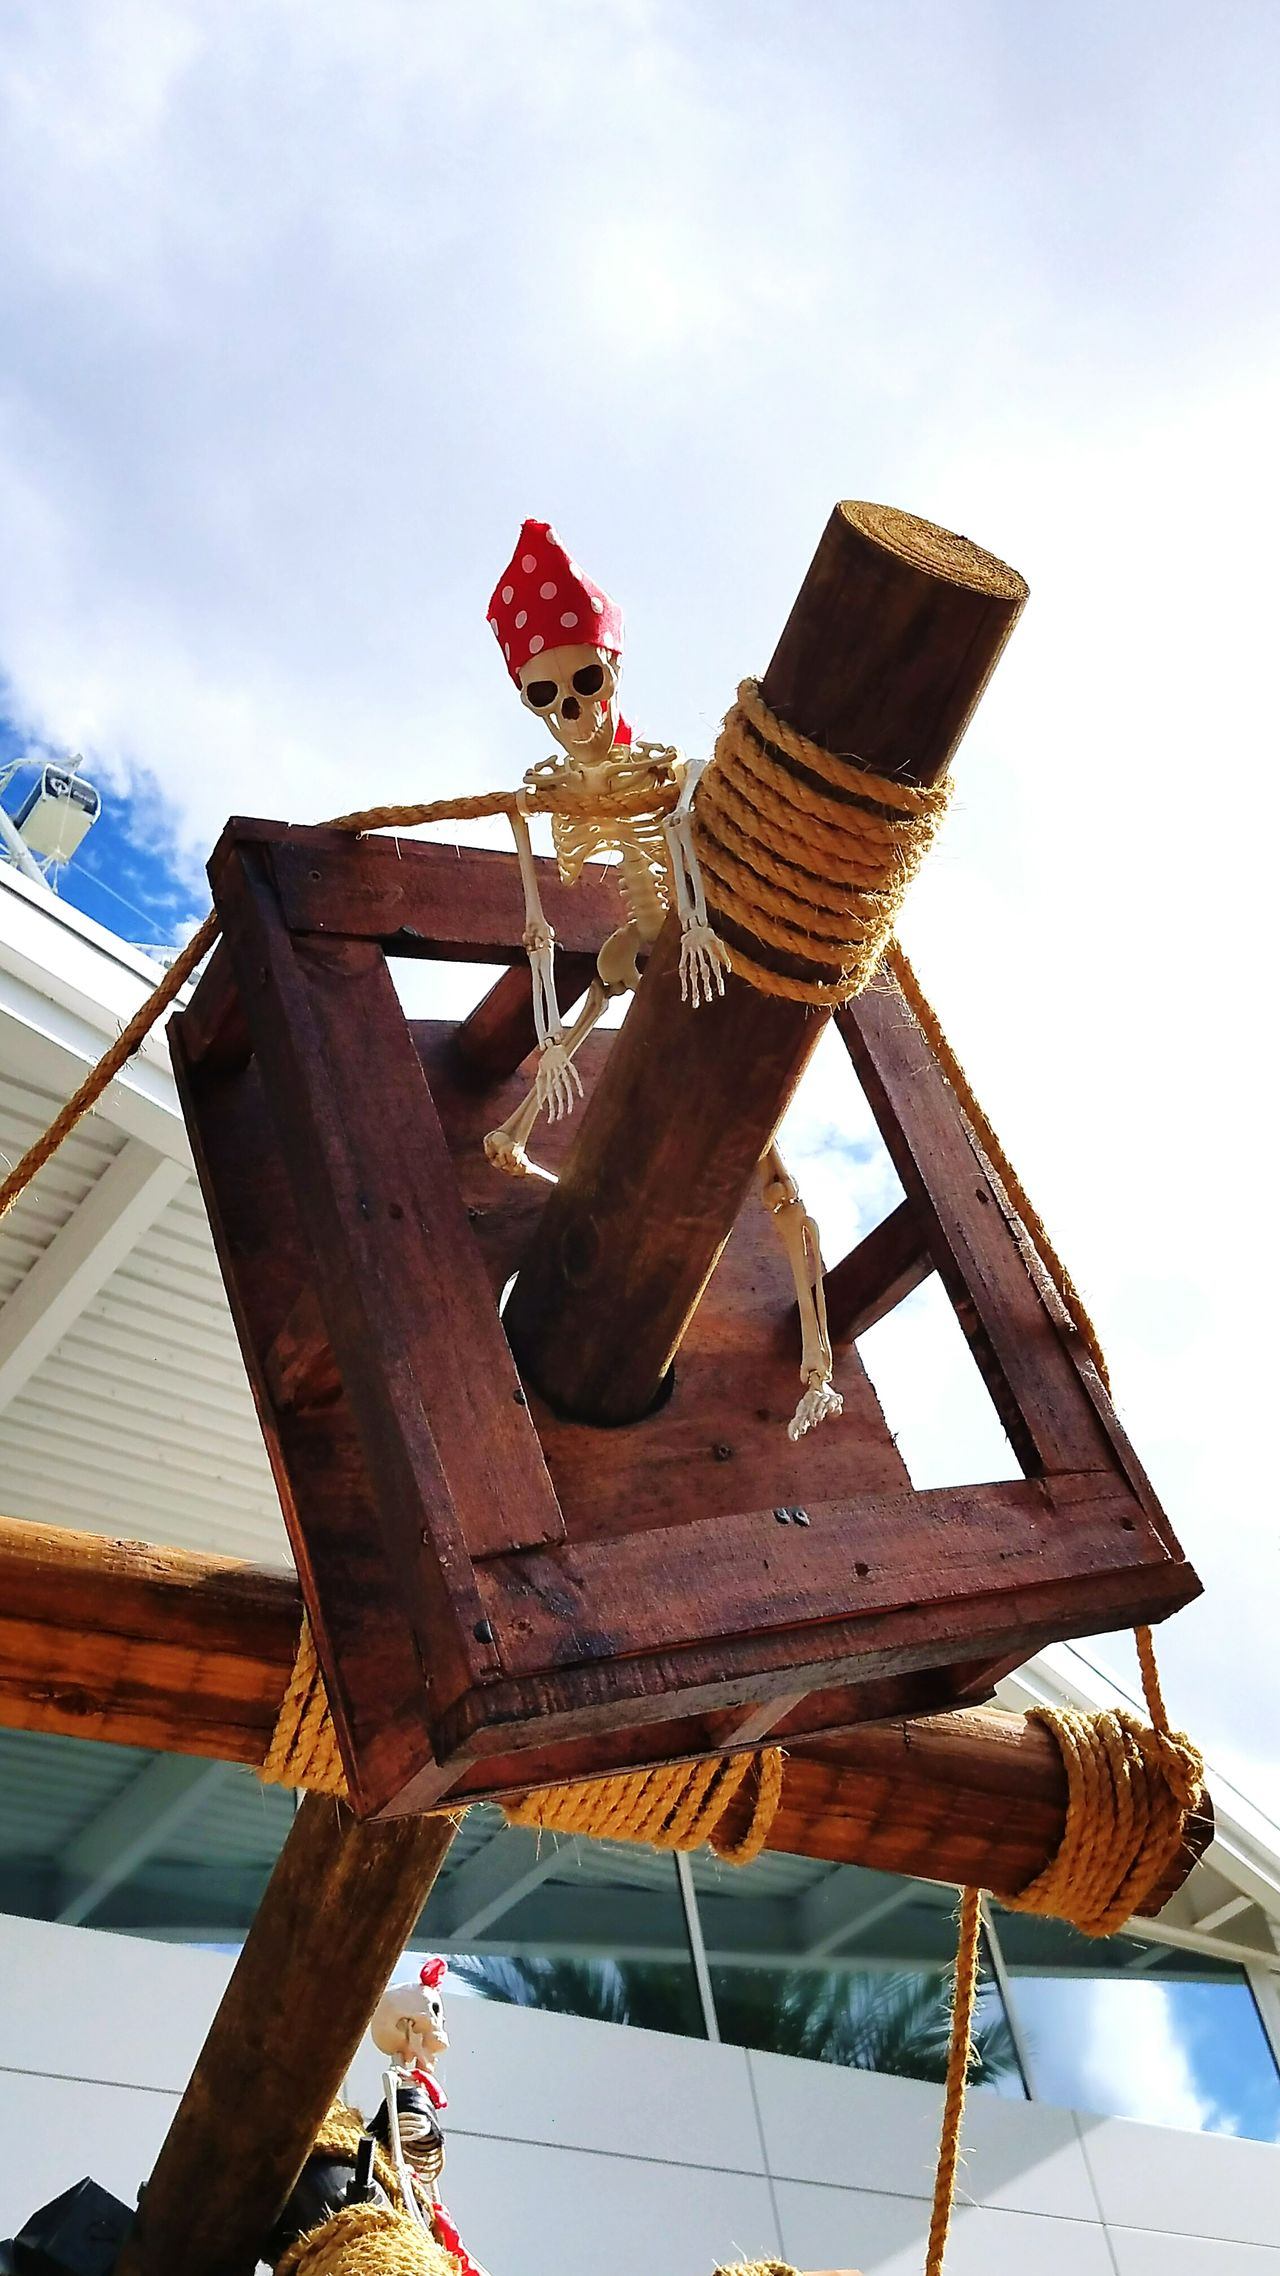 One Man Only EyeEmNewHere Pirates Skeleton Pirates Skeleton Pirateship  First Eyeem Photo Outdoors Rollercoaster Day Sky